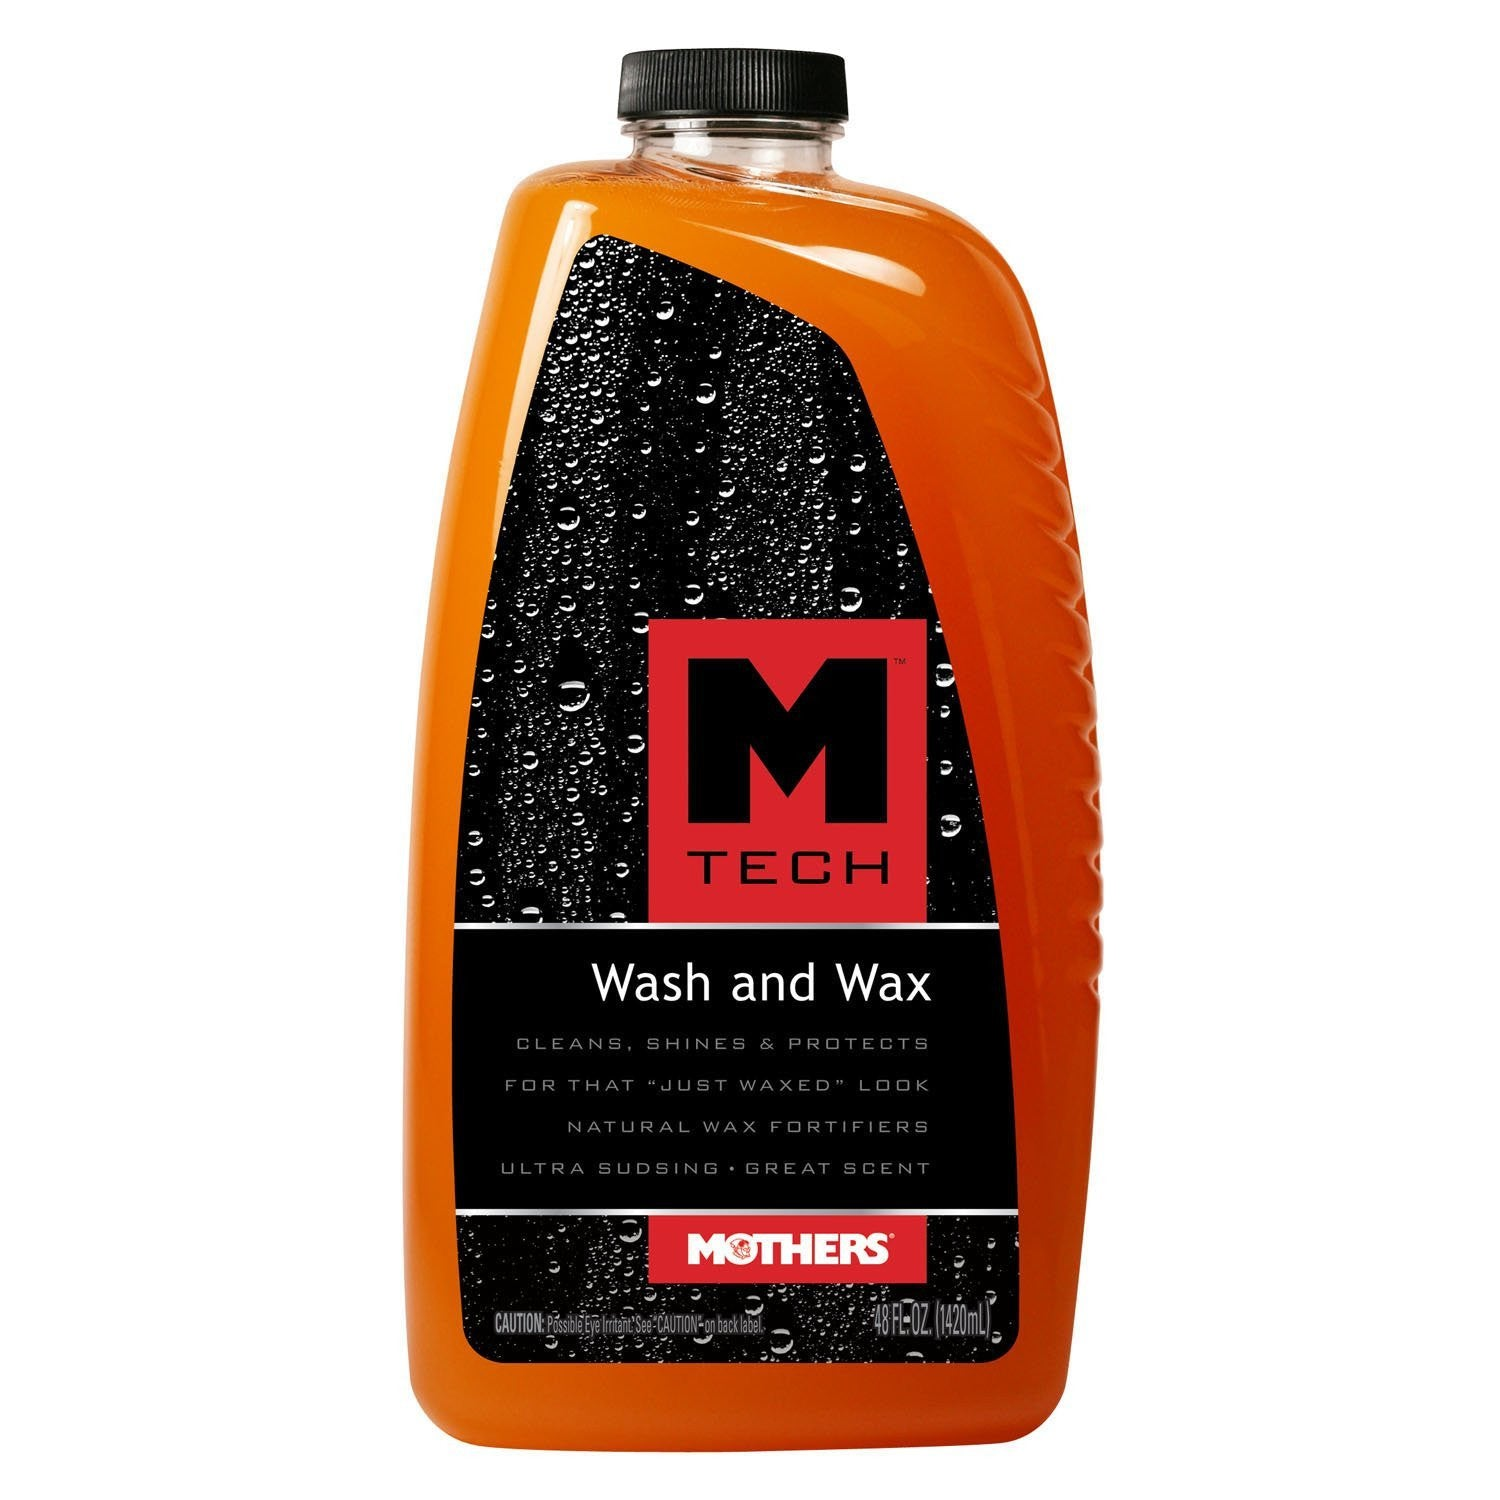 Mothers M-Tech Wash and Wax 48 oz.